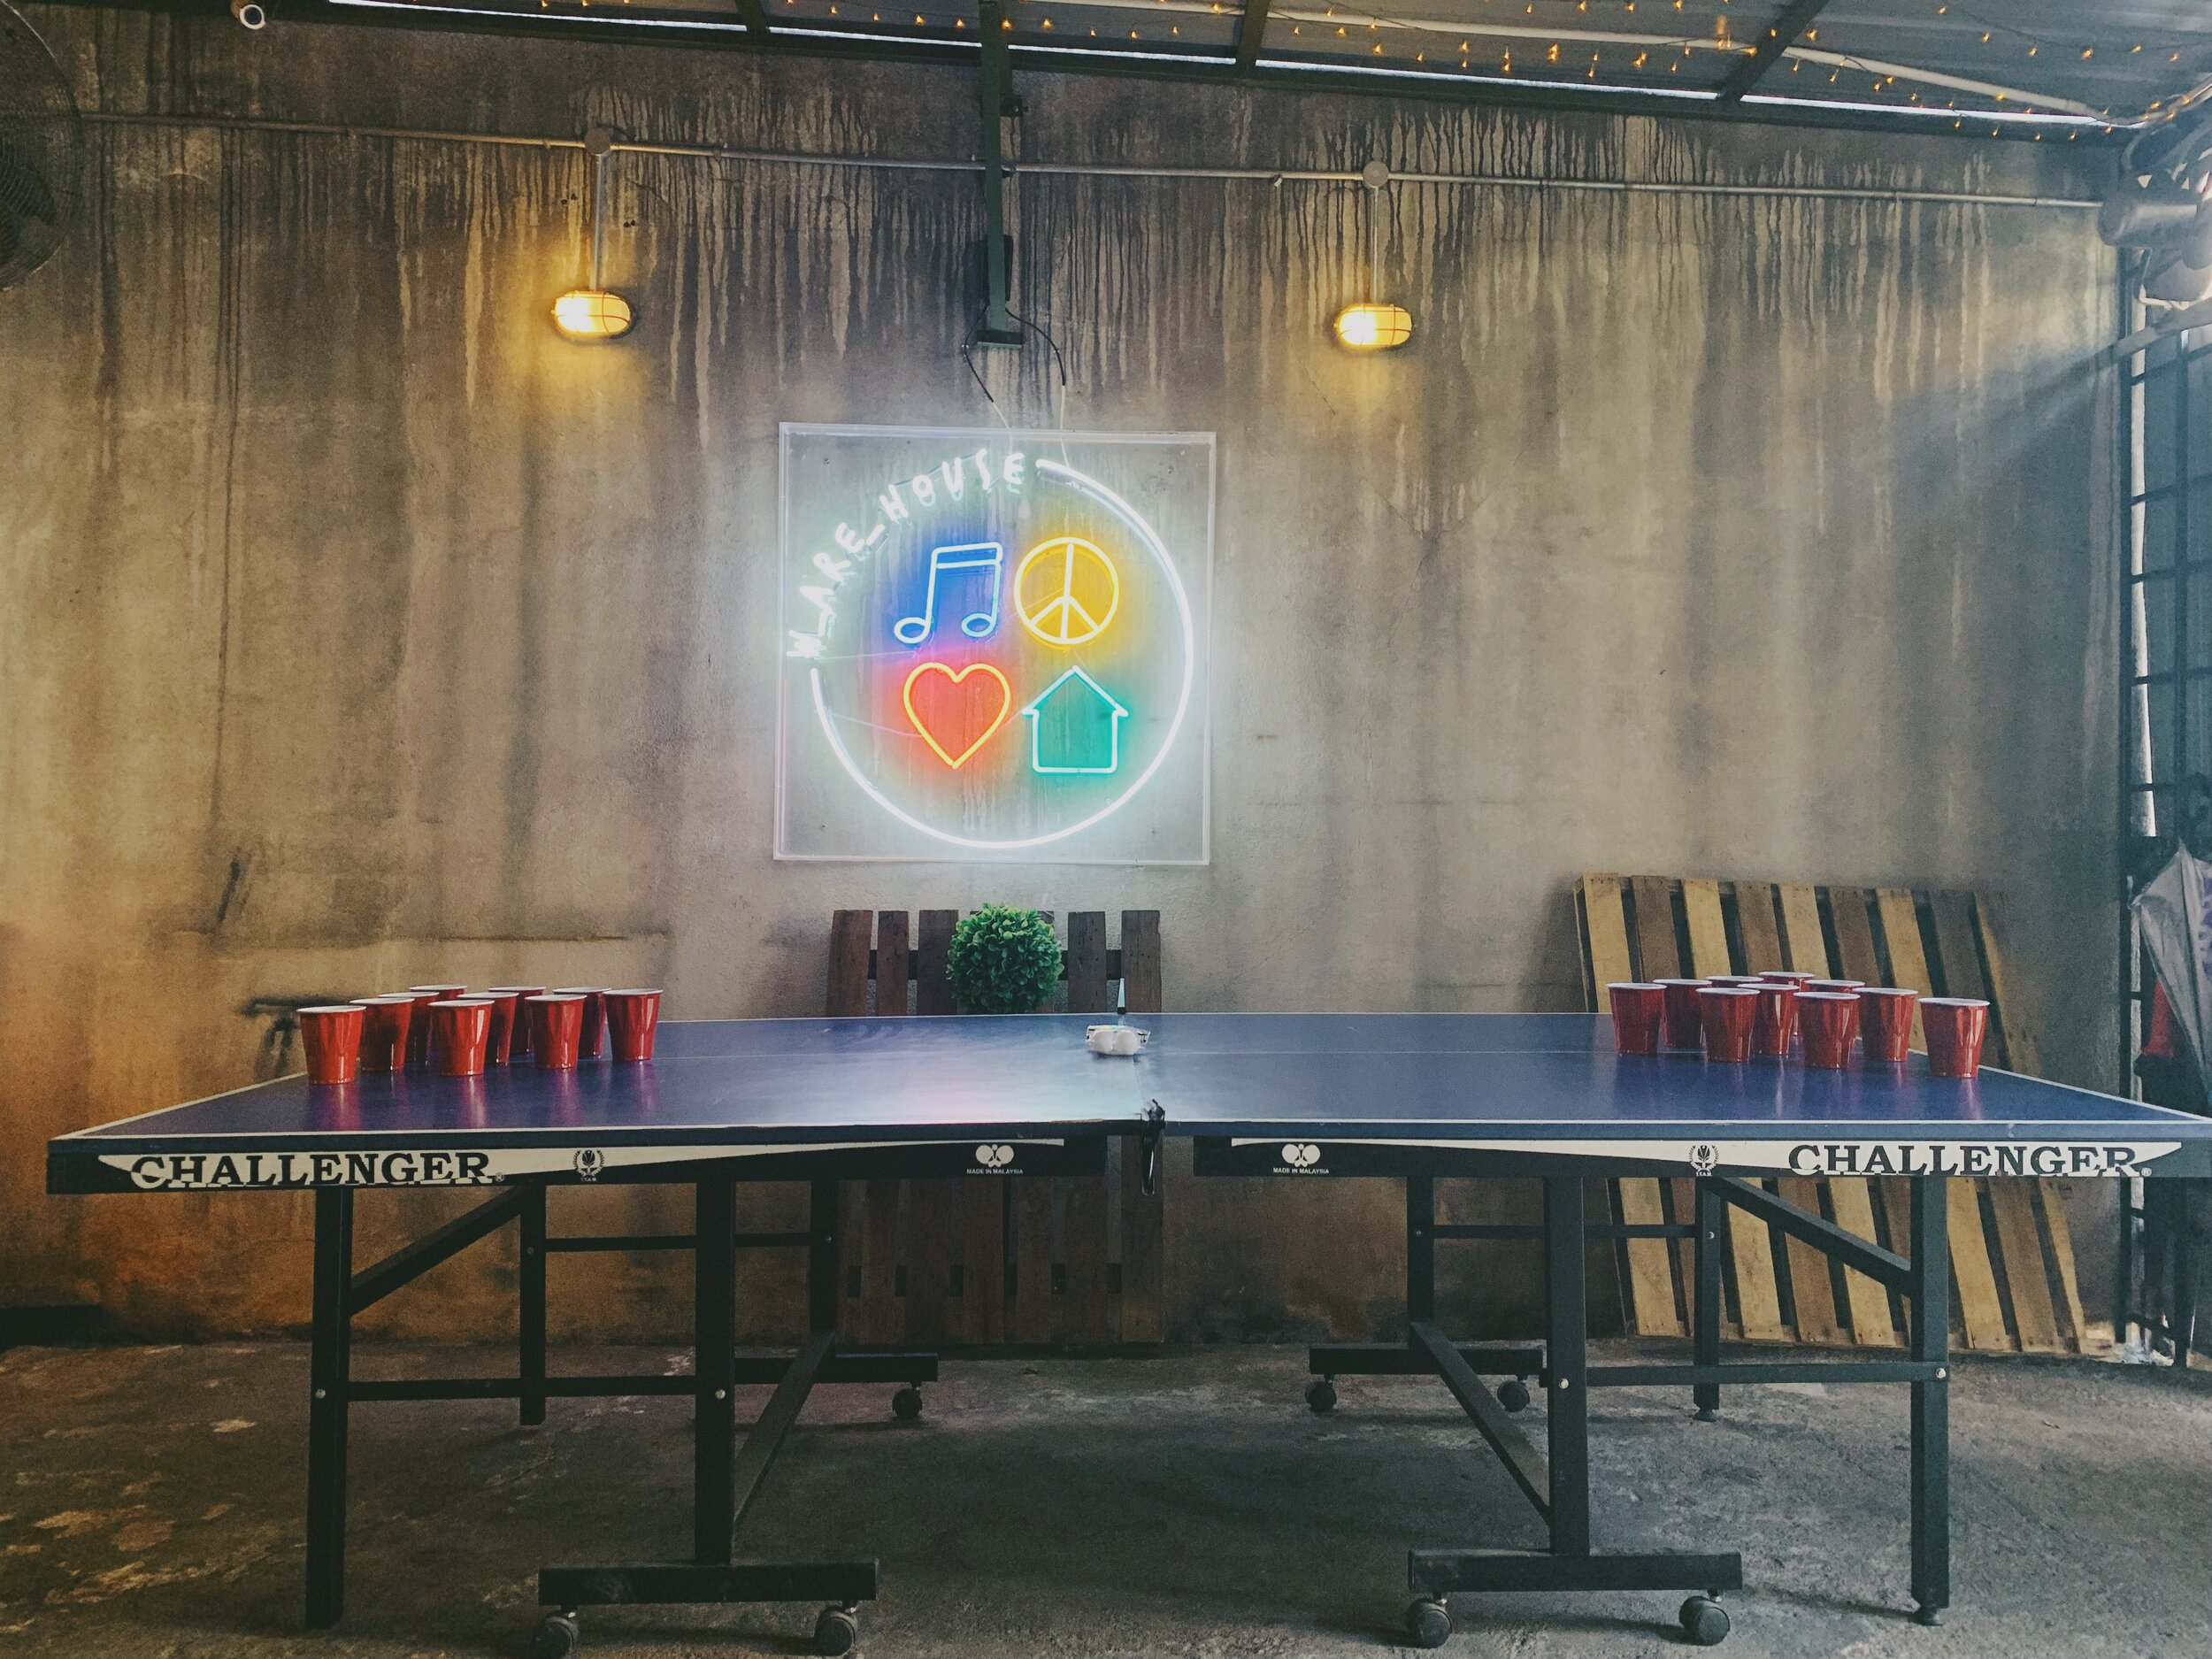 In-House Games - Keep your guests entertained at the party with some fun and games.